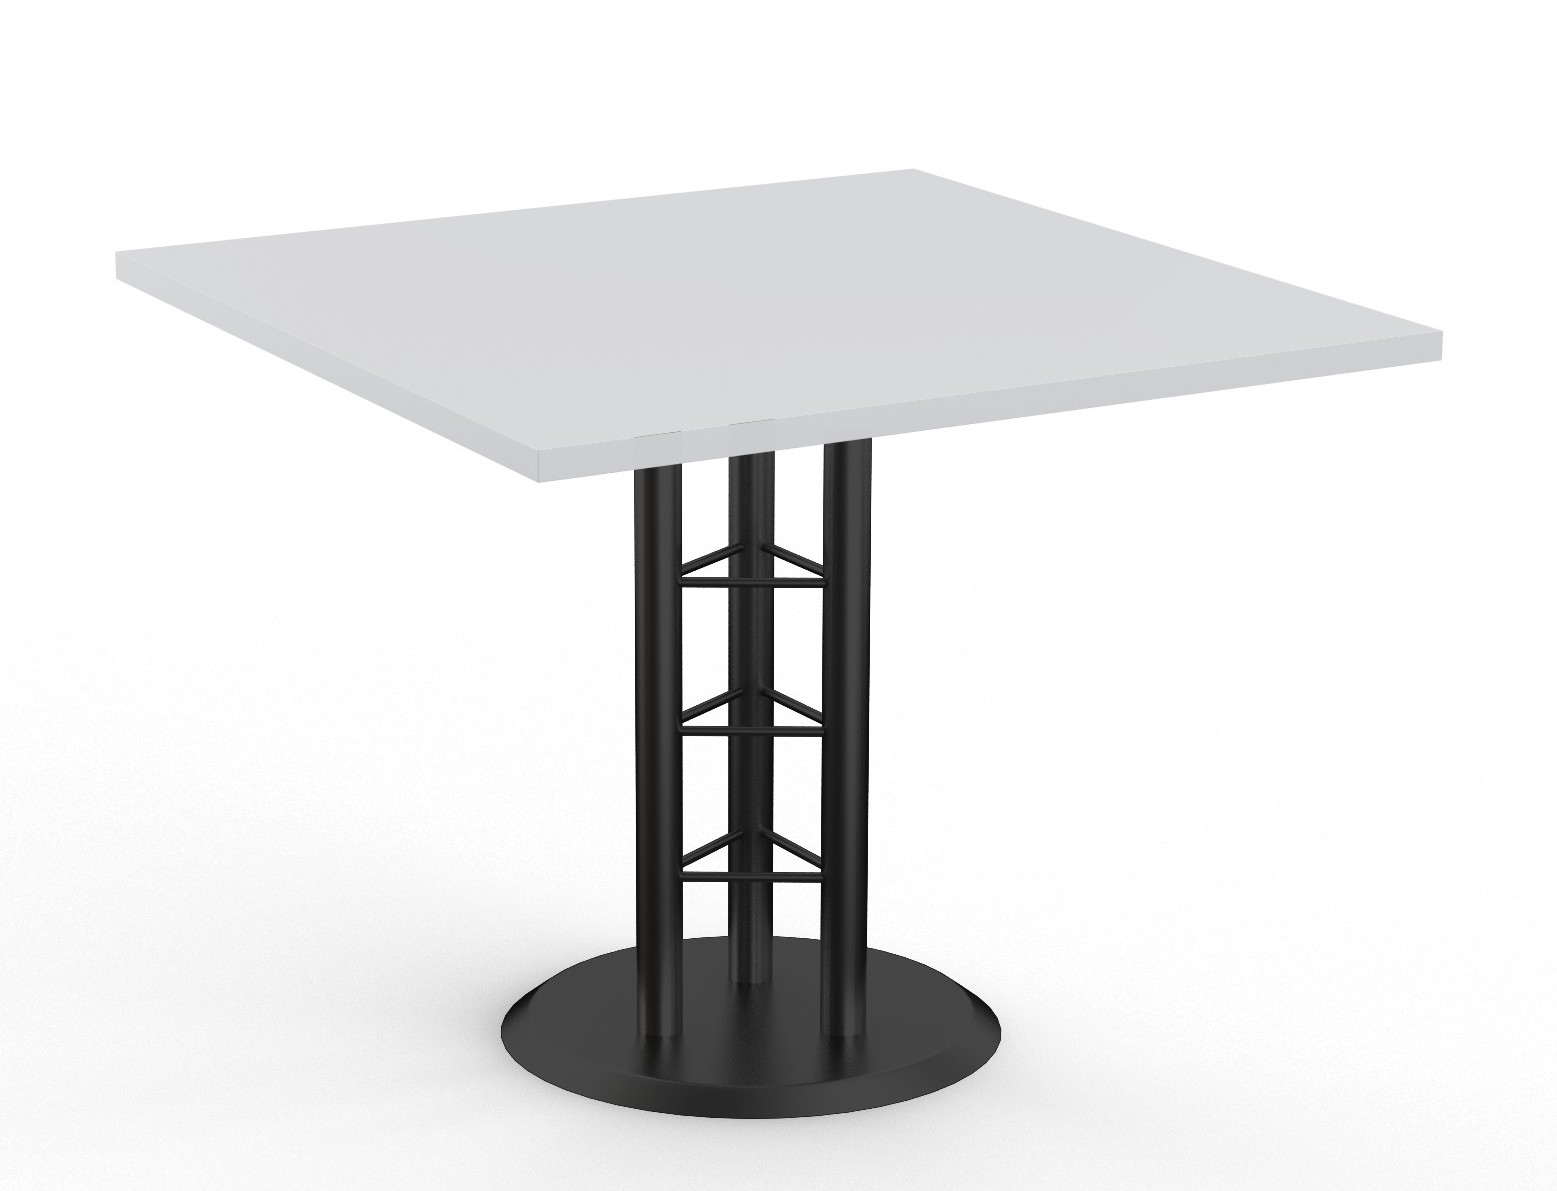 special-t success table in light grey